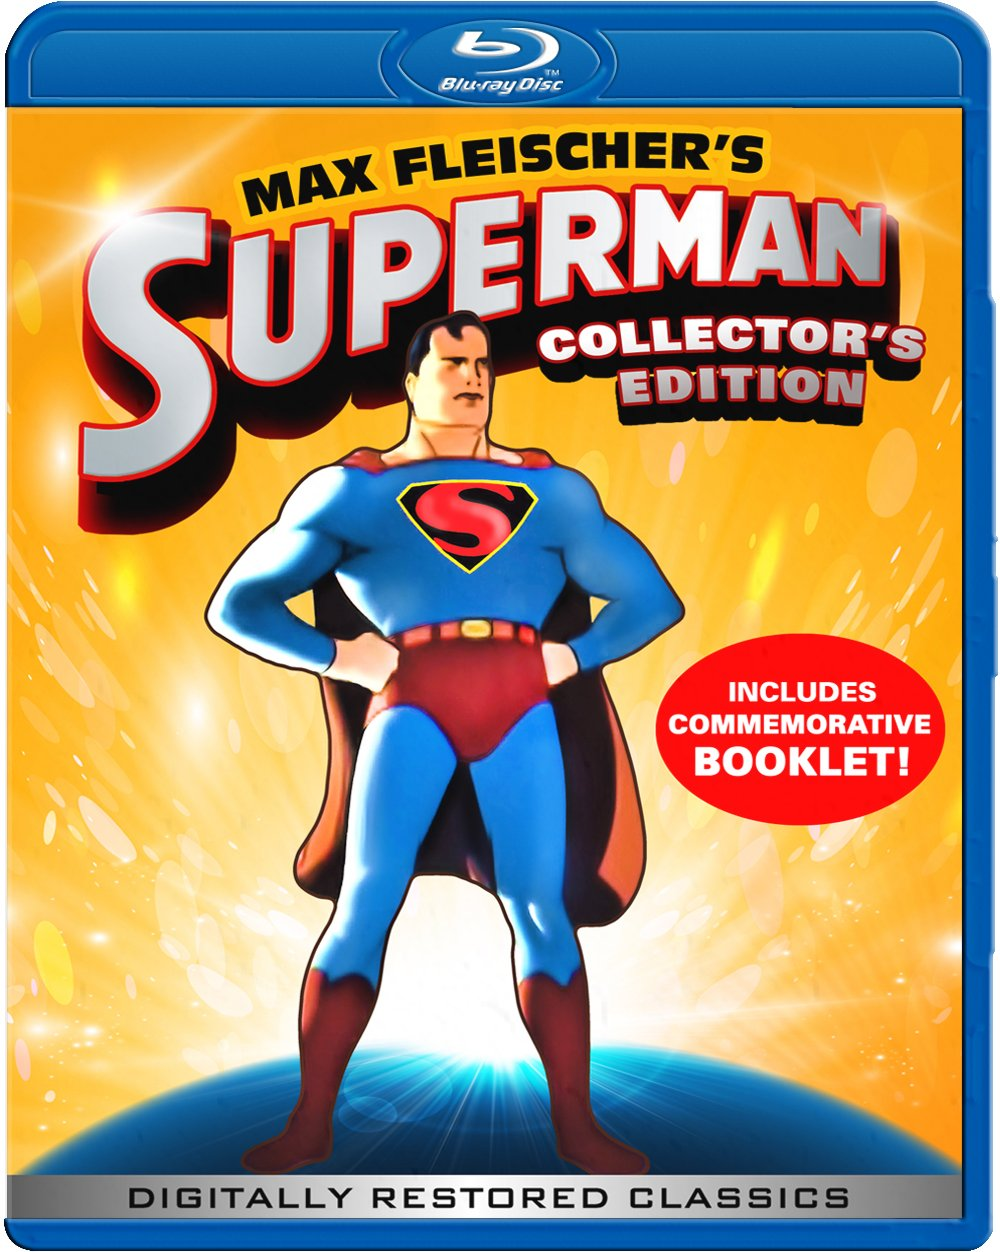 Max Fleischer's Superman Collector's Edition Blu-ray (Includes Commemorative Booklet)